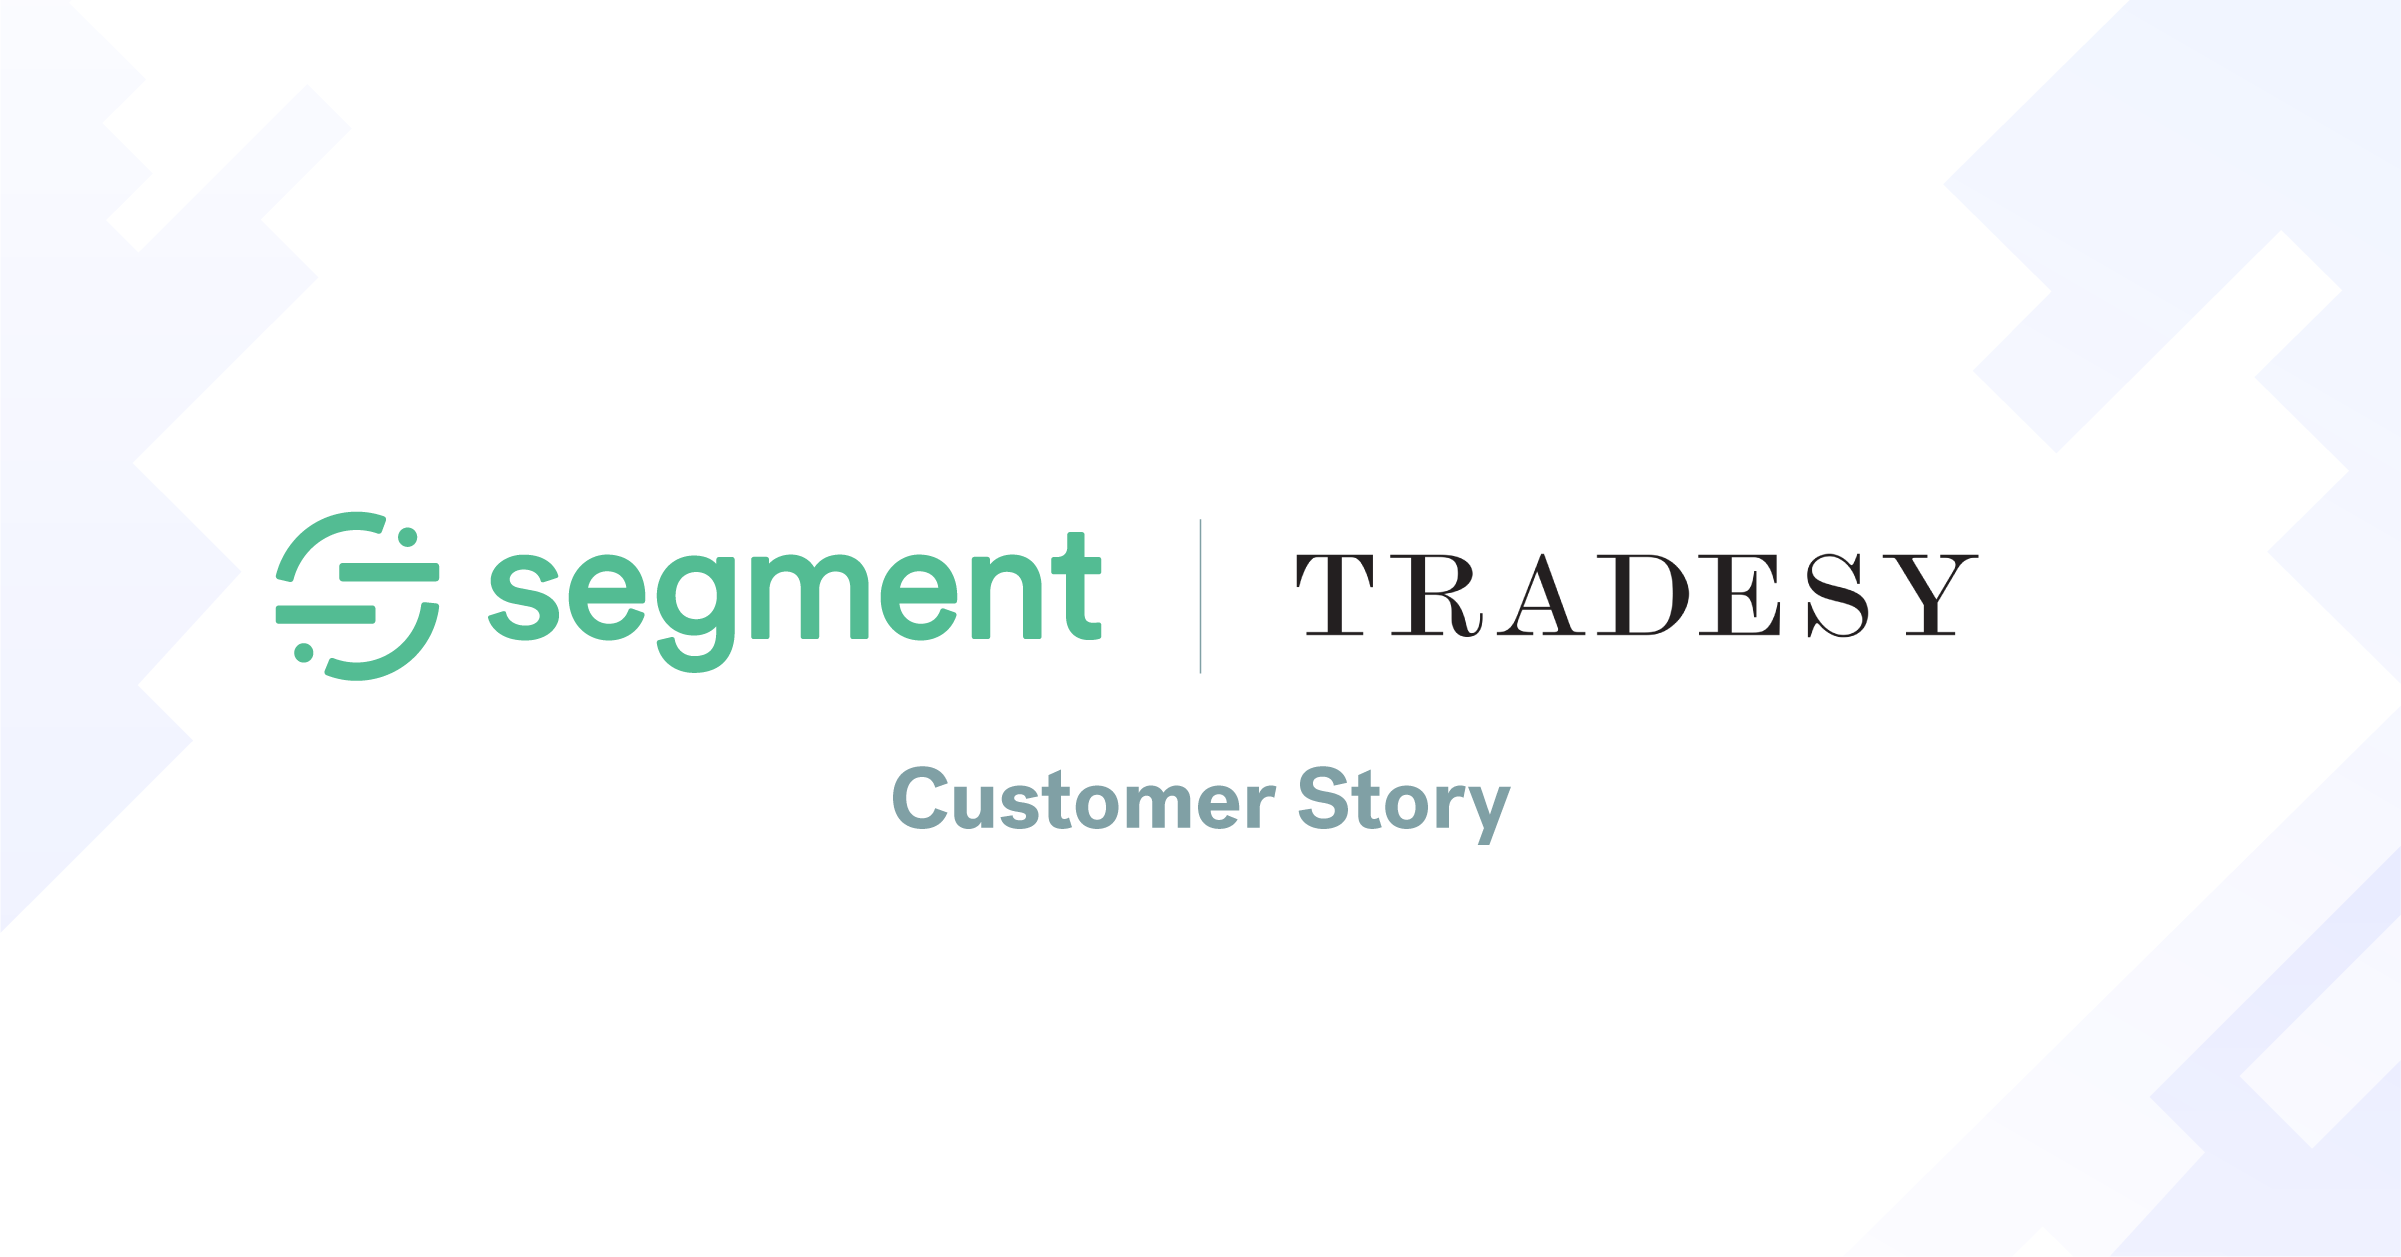 How Tradesy built a fine-grained view of their customers